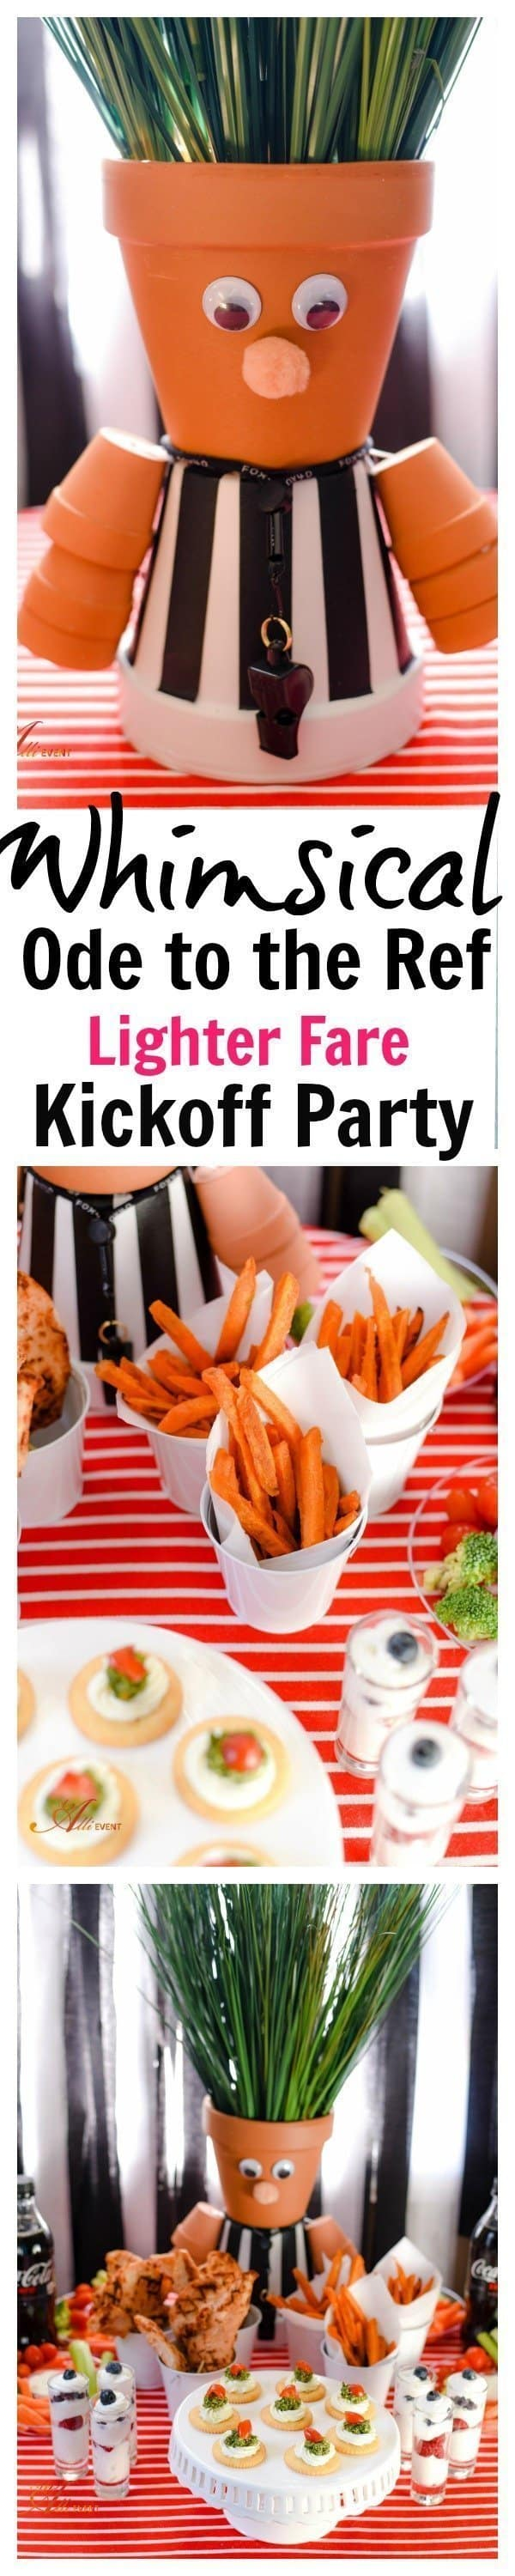 I've put a whimsical spin on my Ode to the Ref Kickoff Party. Plus, I'm serving lighter fare, including homemade cilantro pesto. Shhh - your guest don't have to know. My Ode to the Ref centerpiece is fun to make and your guests will love he whimsical touch.